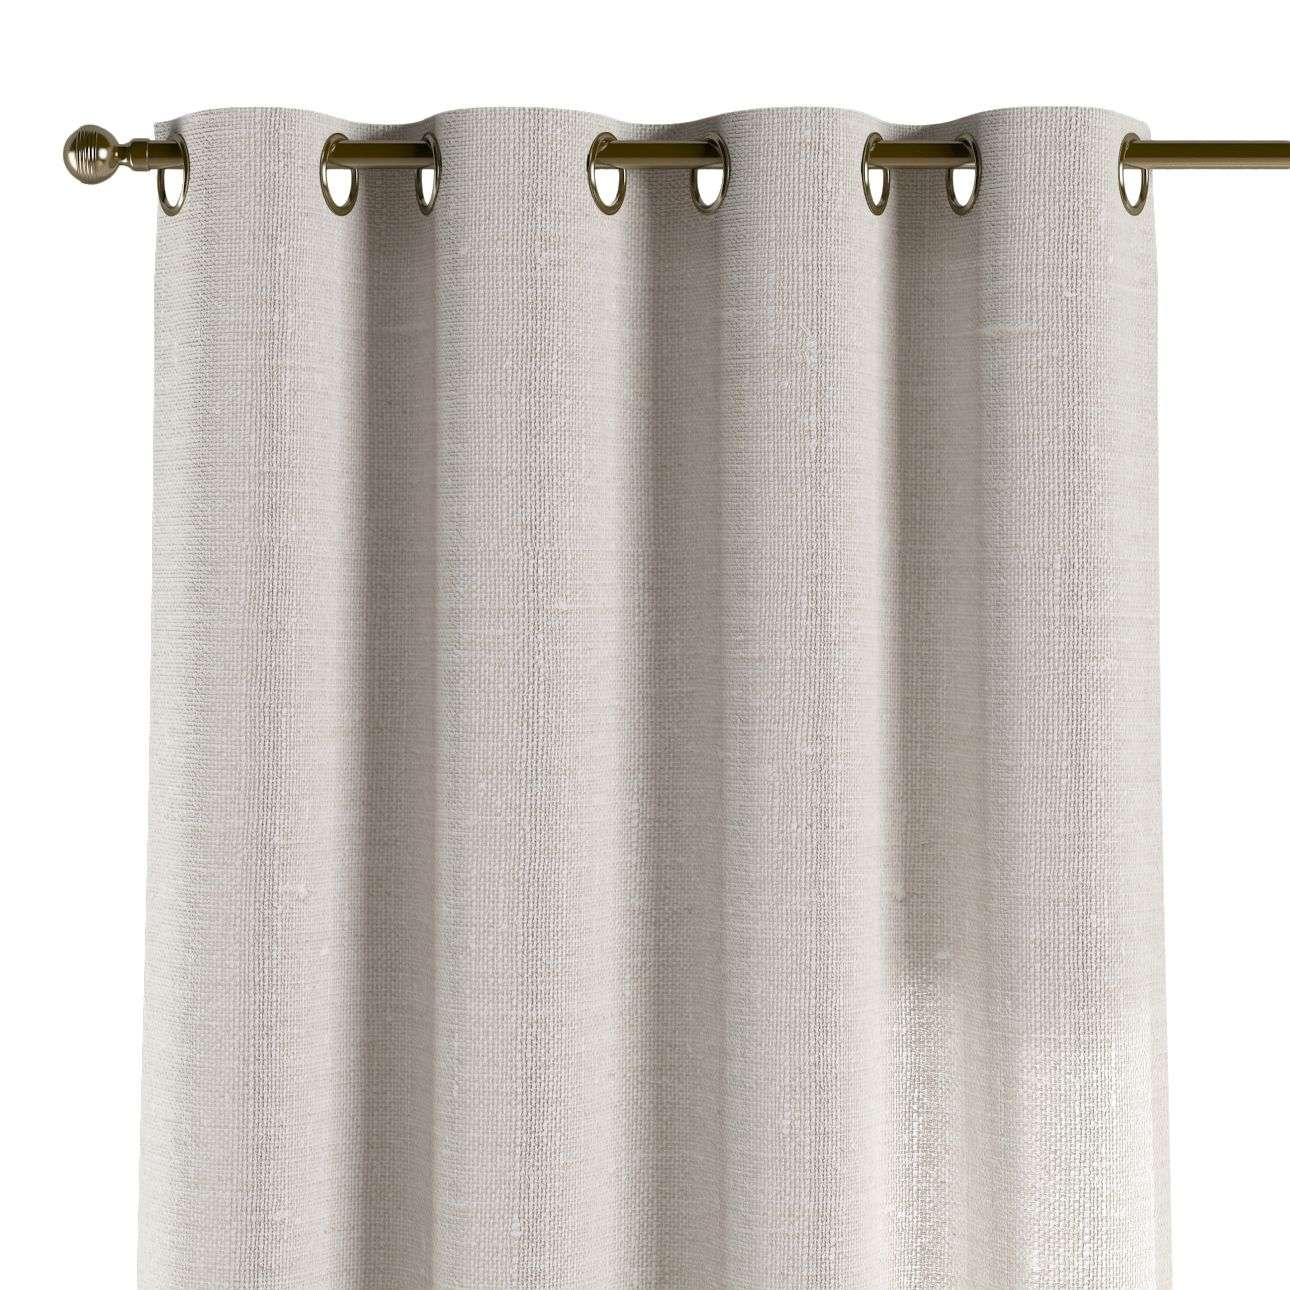 Eyelet curtains 130 x 260 cm (51 x 102 inch) in collection Linen , fabric: 392-04